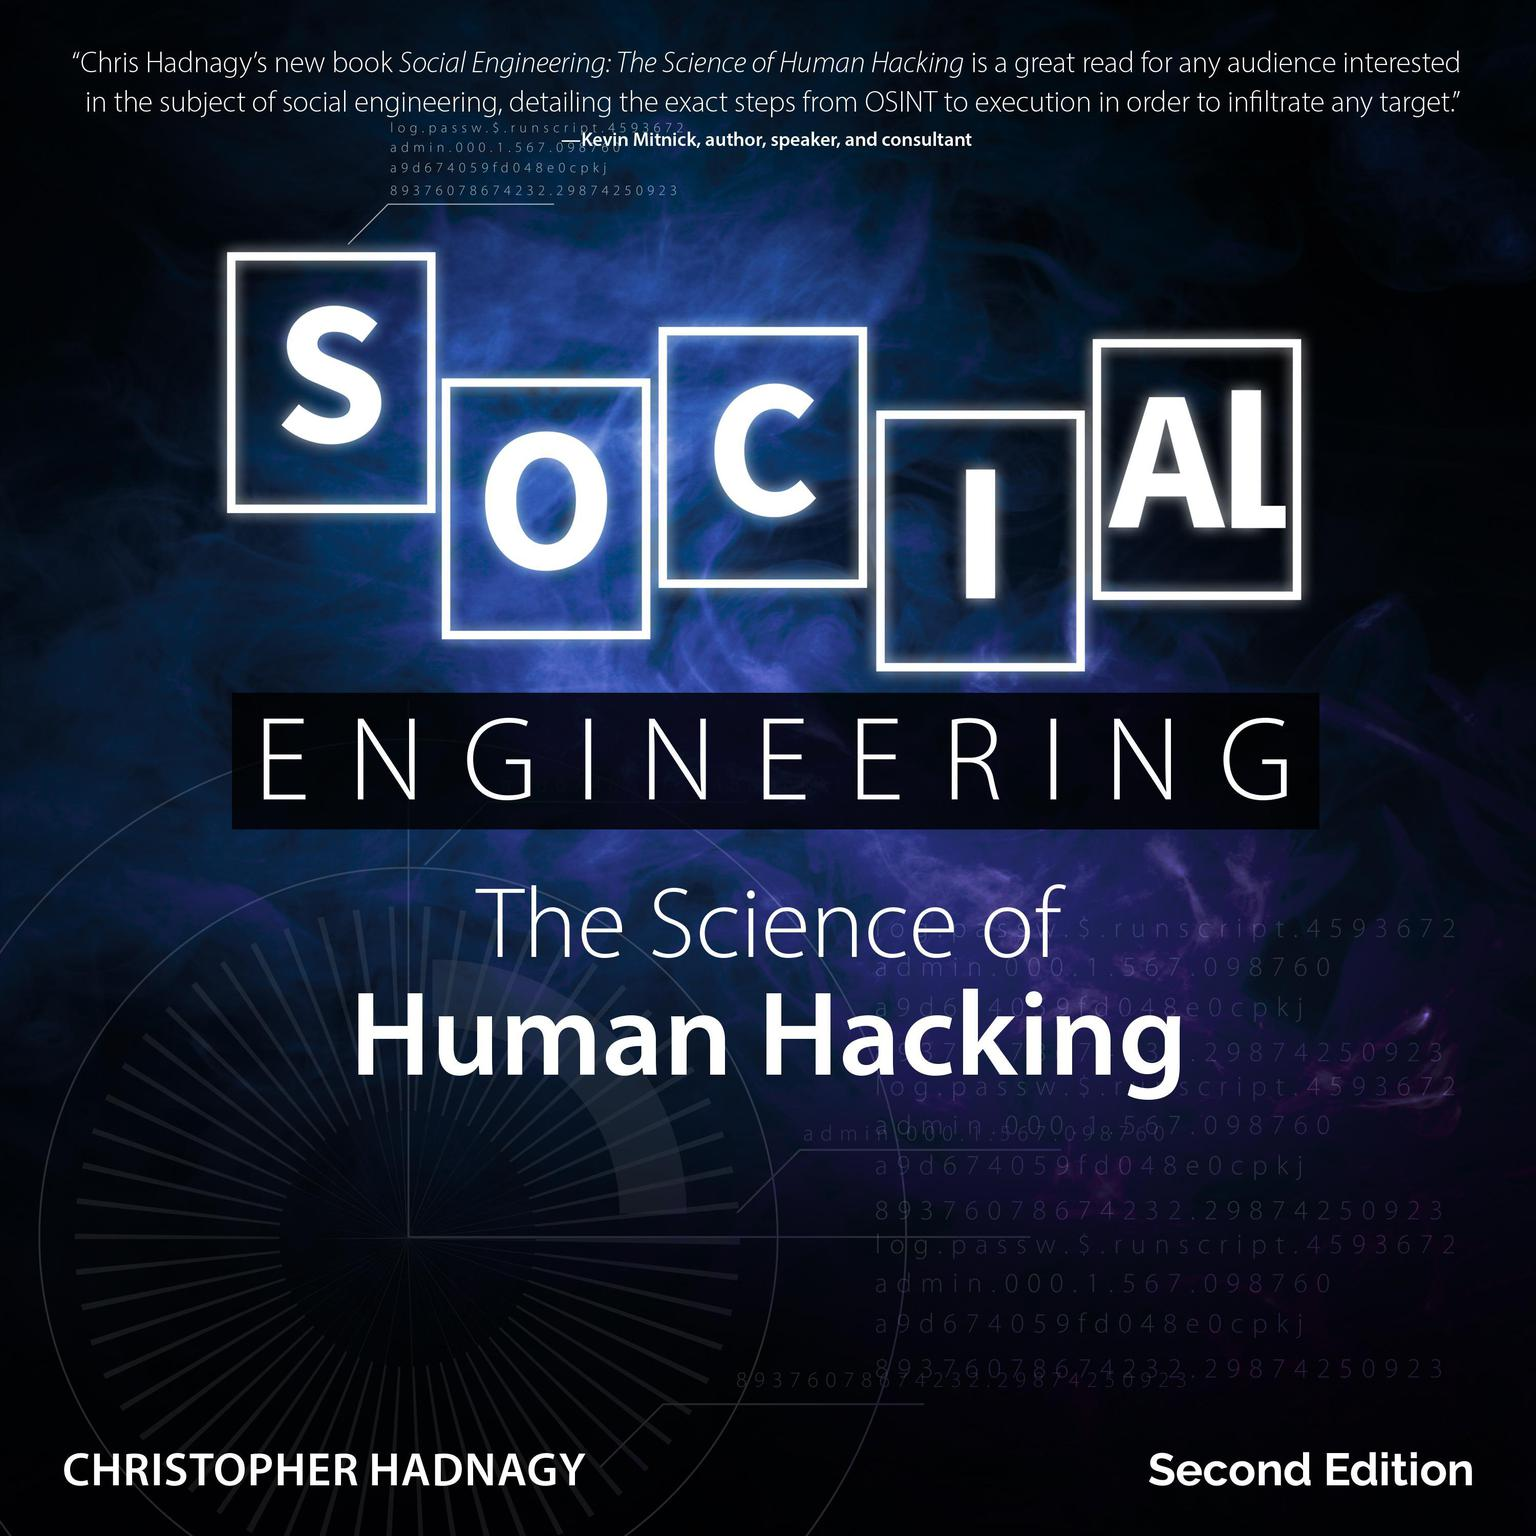 Printable Social Engineering: The Science of Human Hacking 2nd Edition Audiobook Cover Art